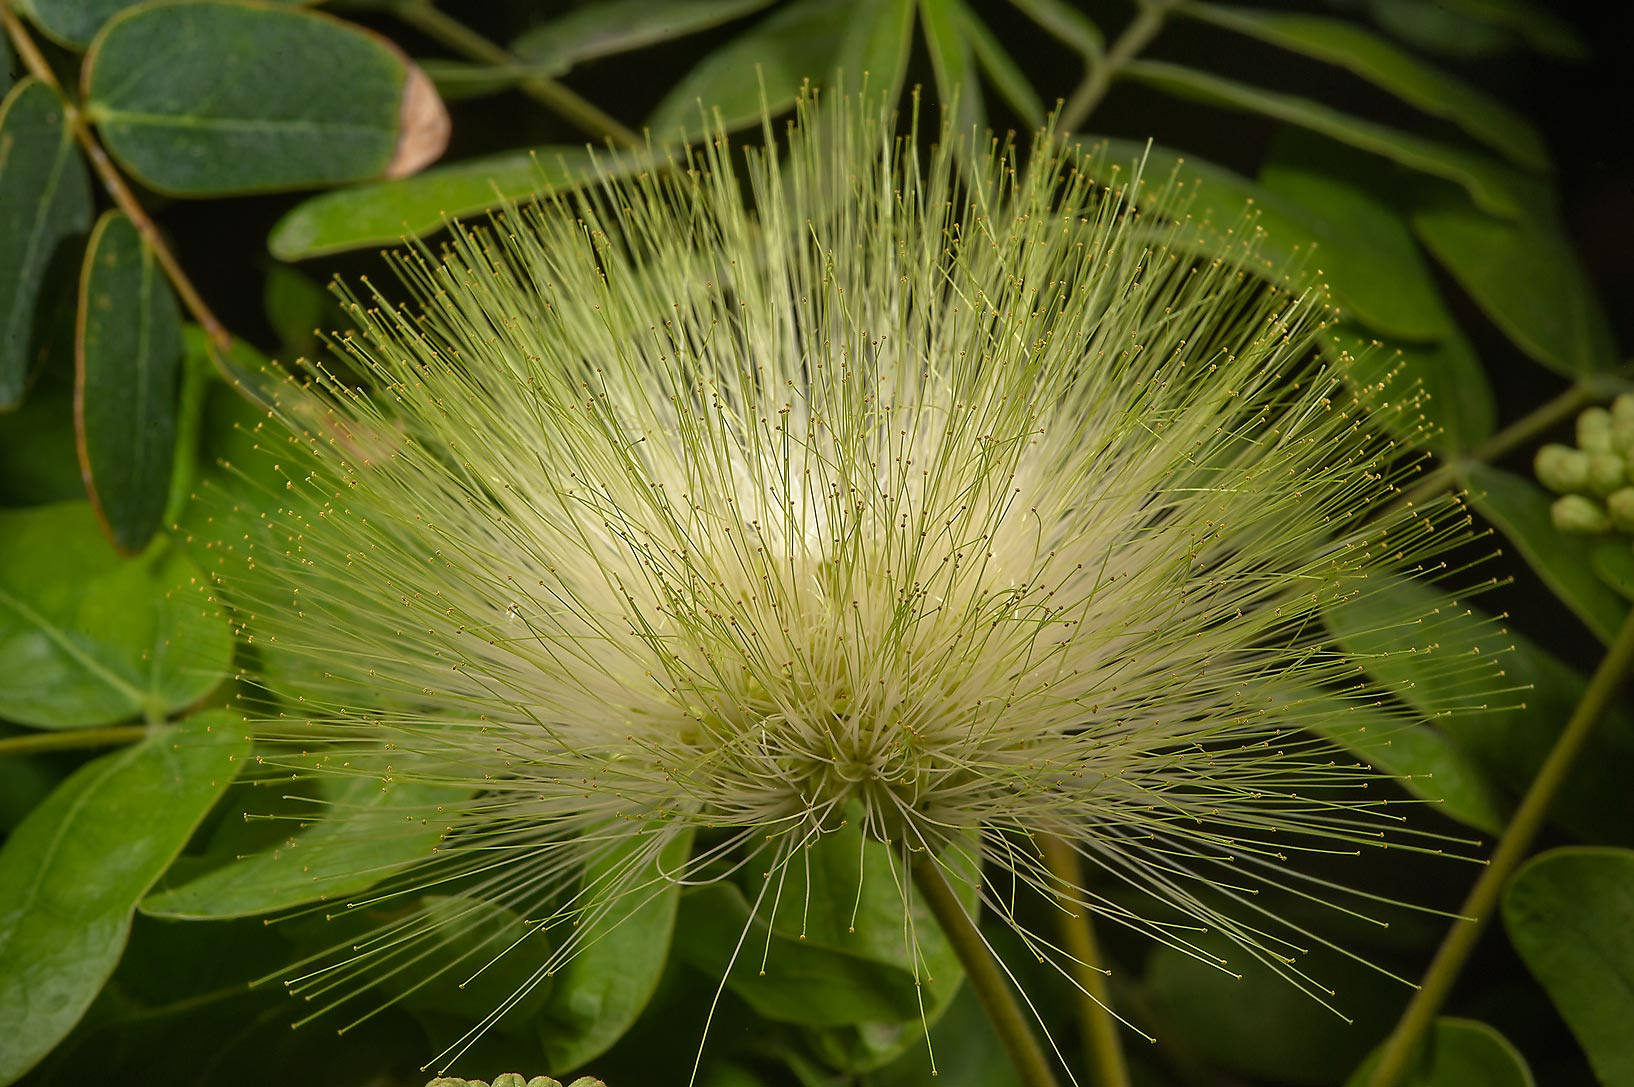 Flower of frywood tree (Albizia lebbeck) on Al Shatt St. in Onaiza area. Doha, Qatar